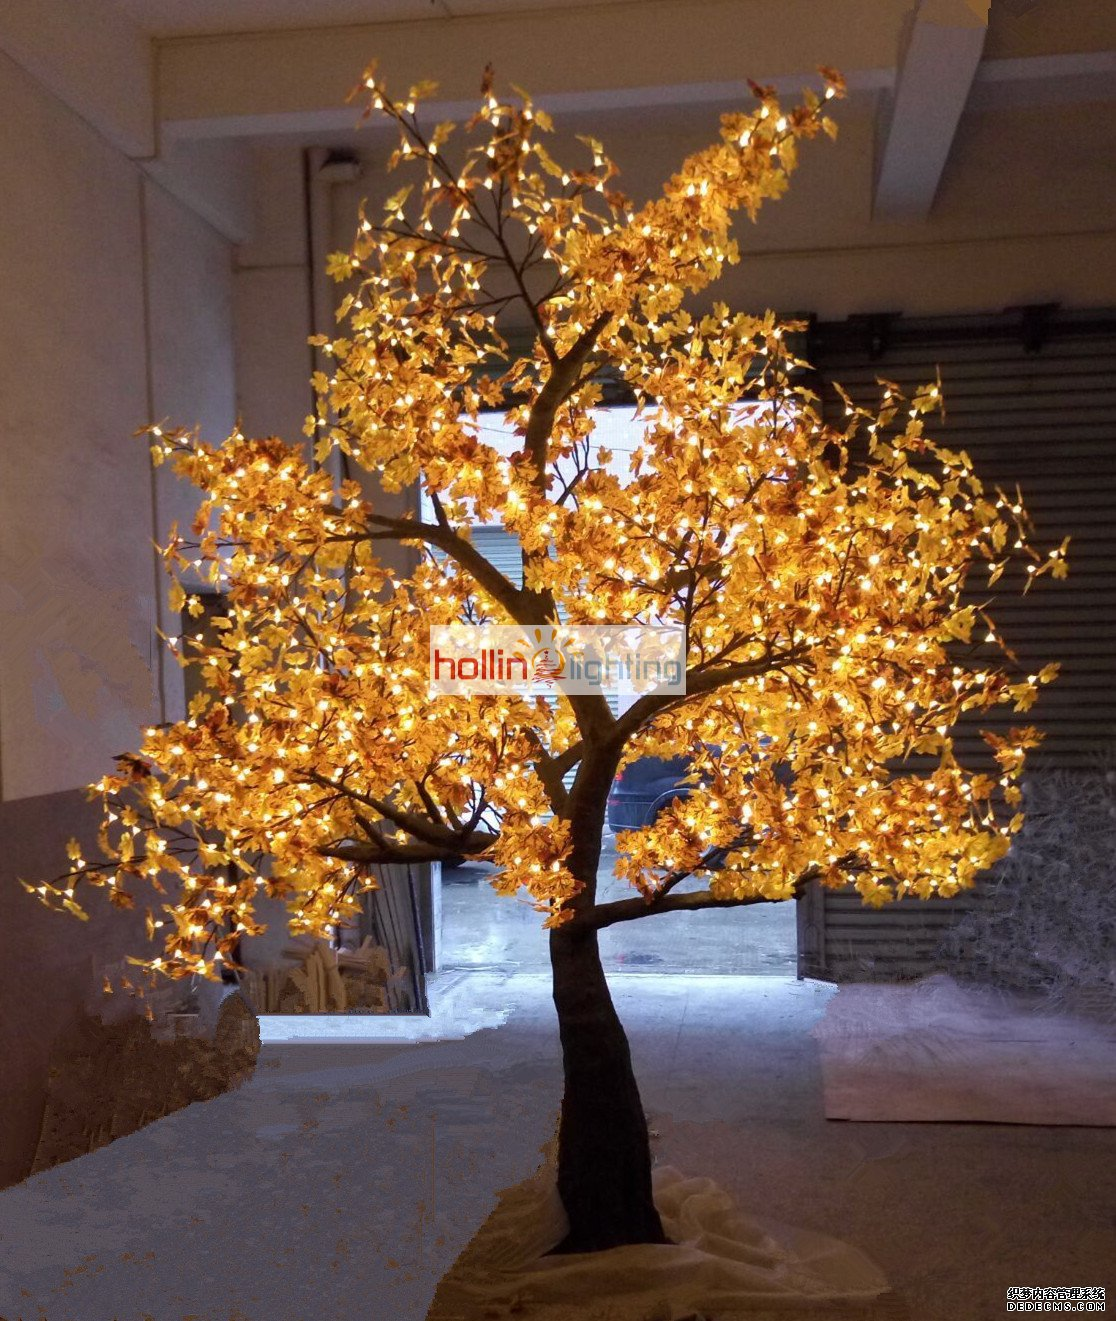 How To String Lights On A Maple Tree : High quality LED Christmas tree light maple HL-MT026-hollinlighting